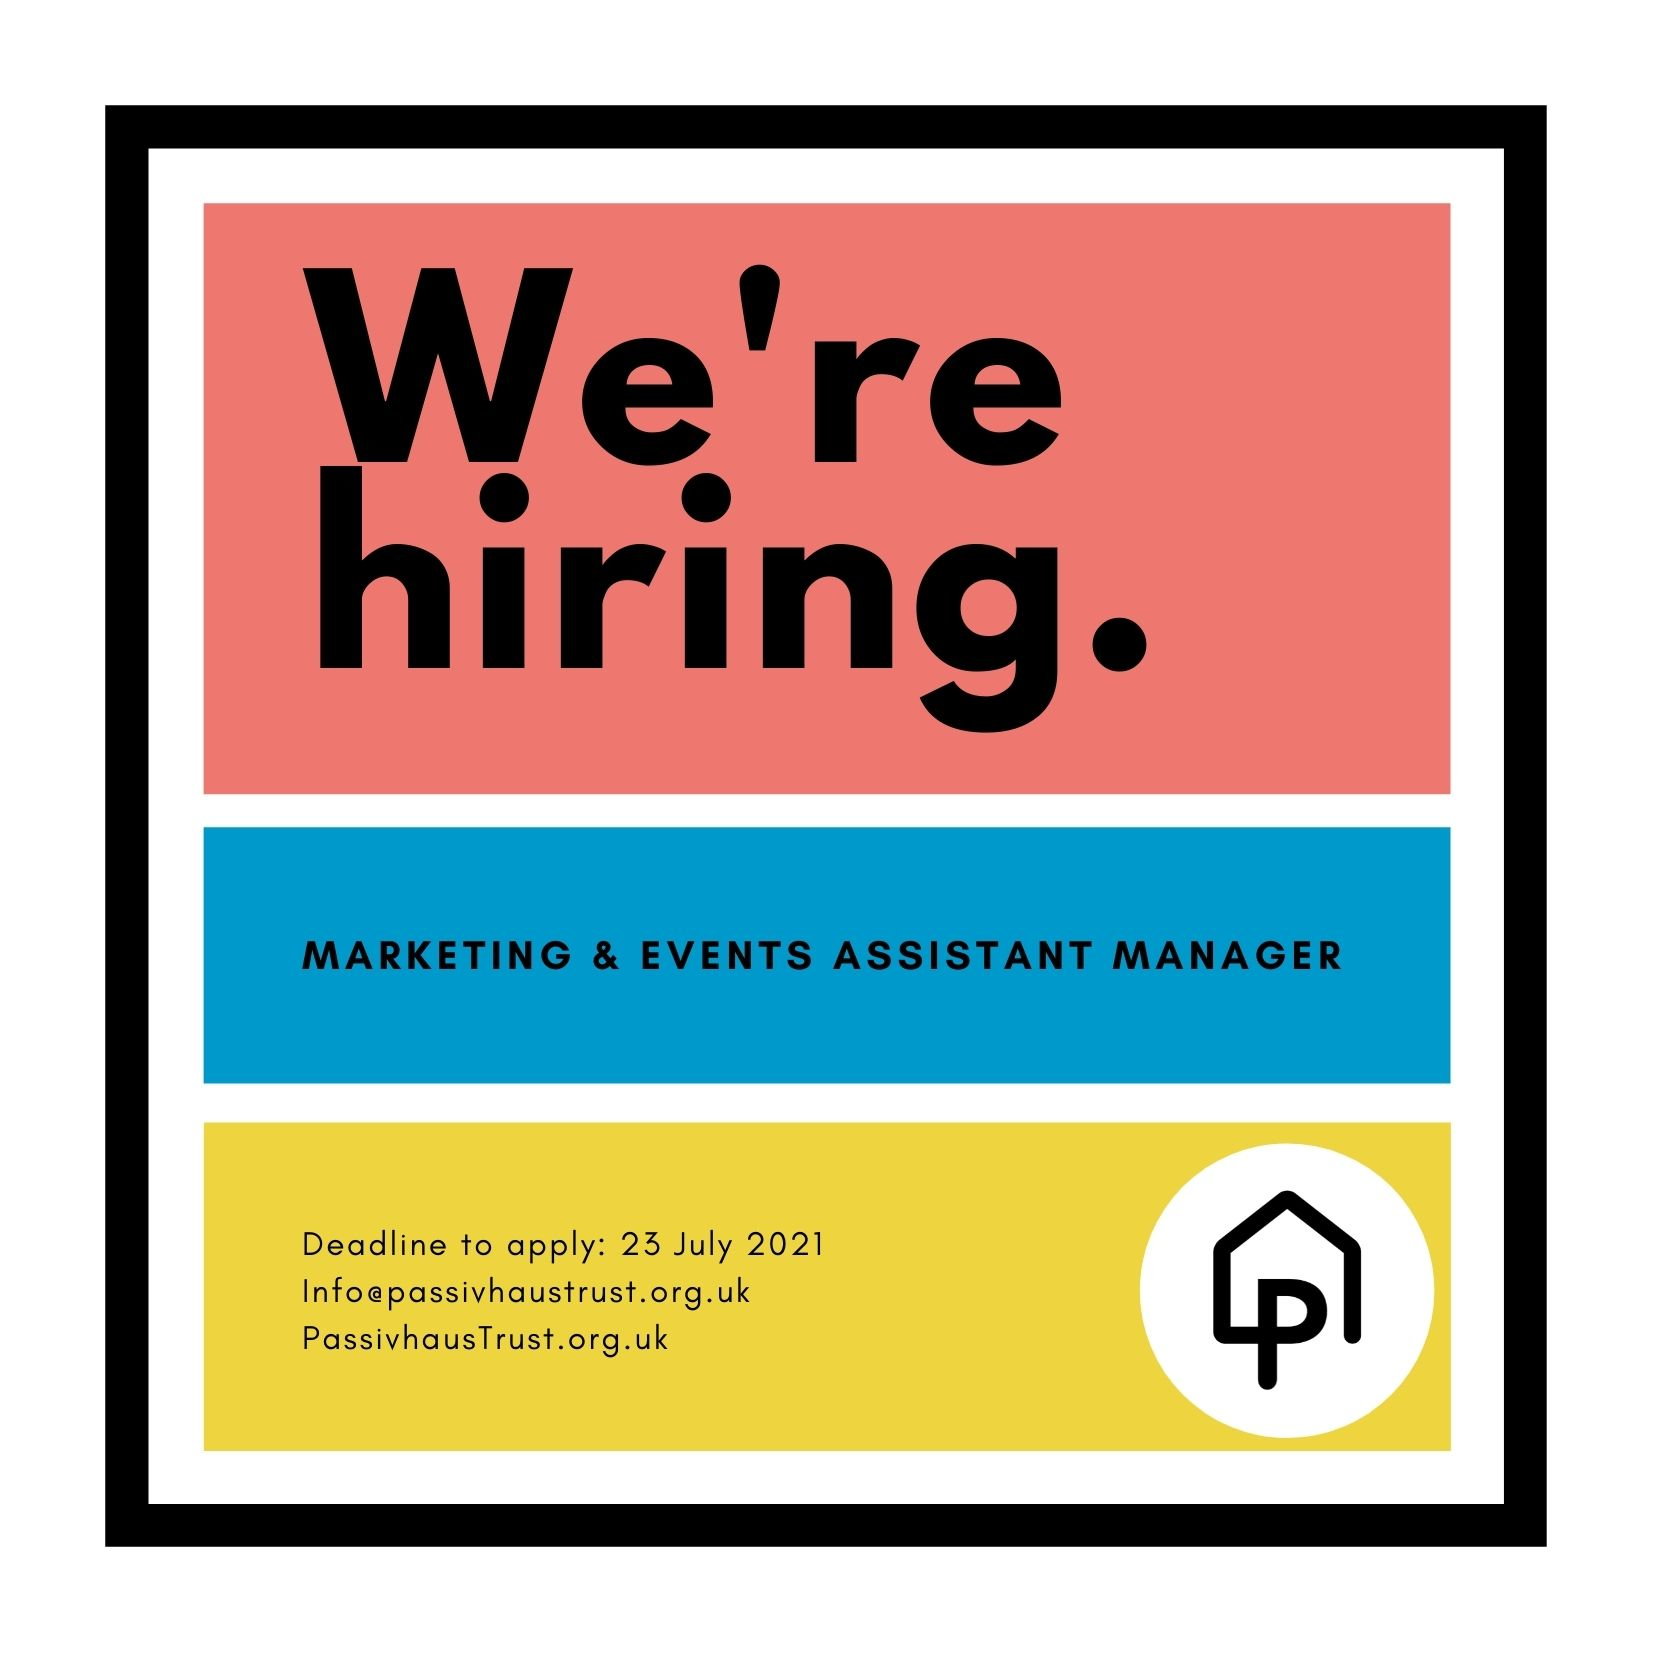 We are hiring! Marketing & Events Assistant Manager